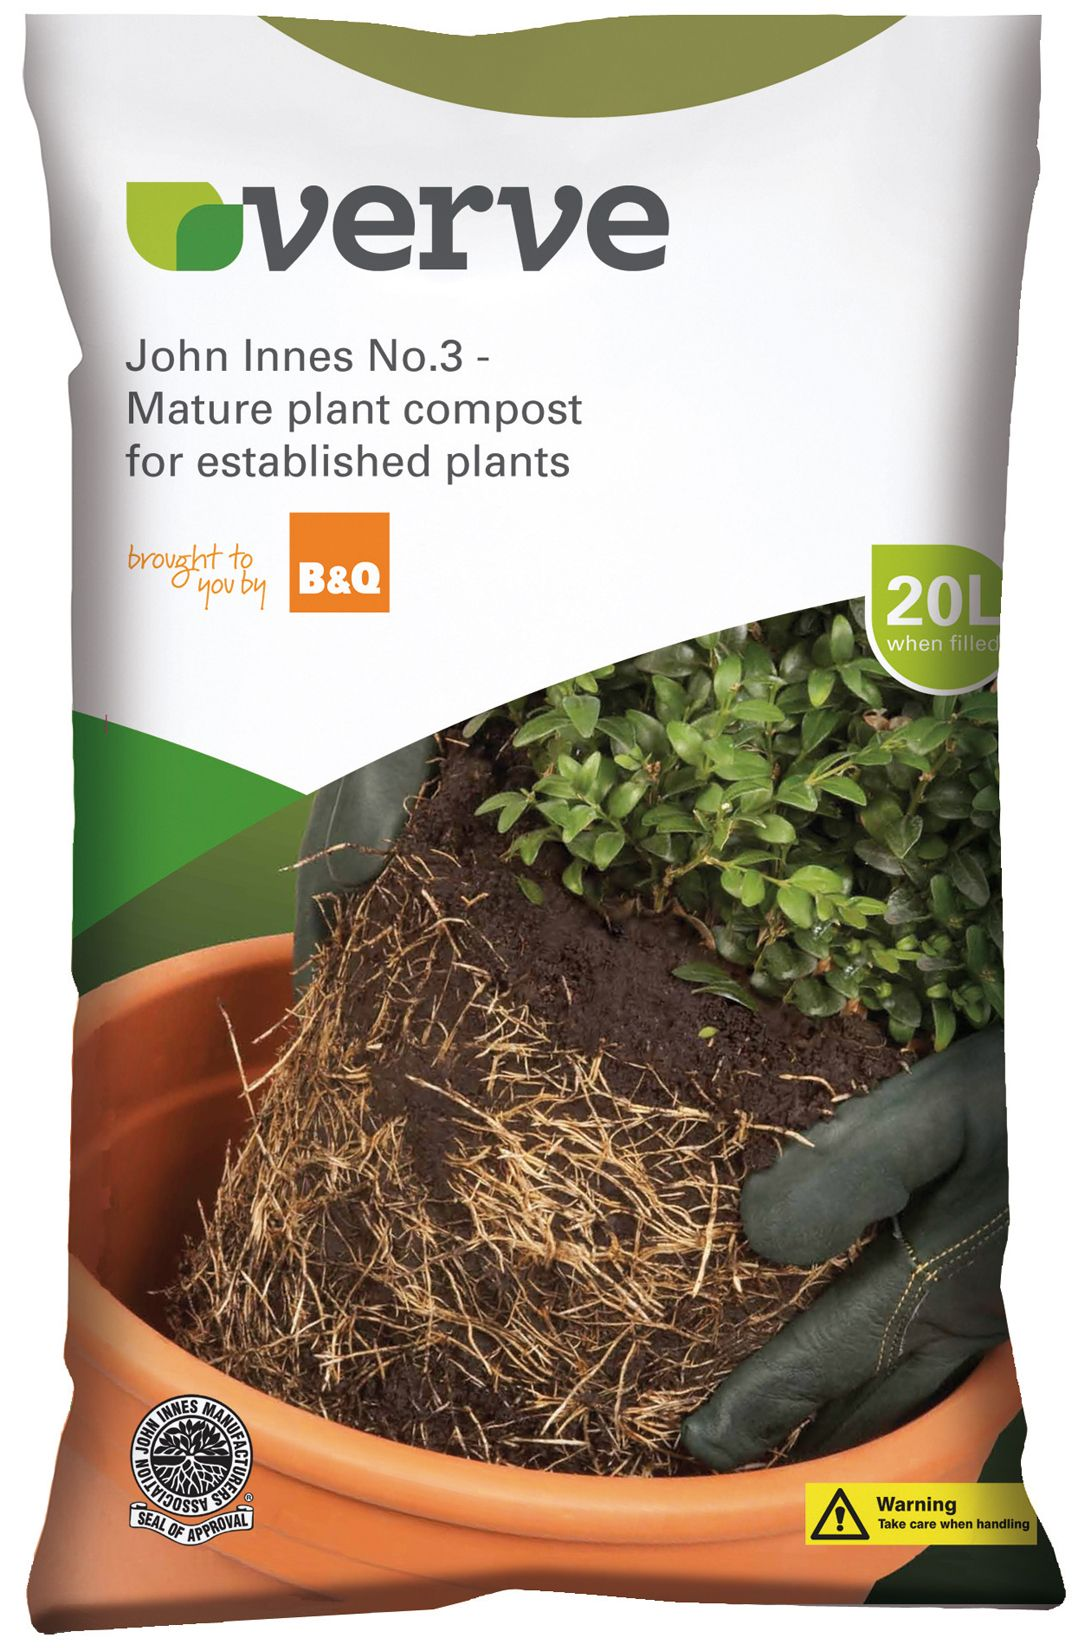 verve john innes no 3 mature plant compost 20l. Black Bedroom Furniture Sets. Home Design Ideas